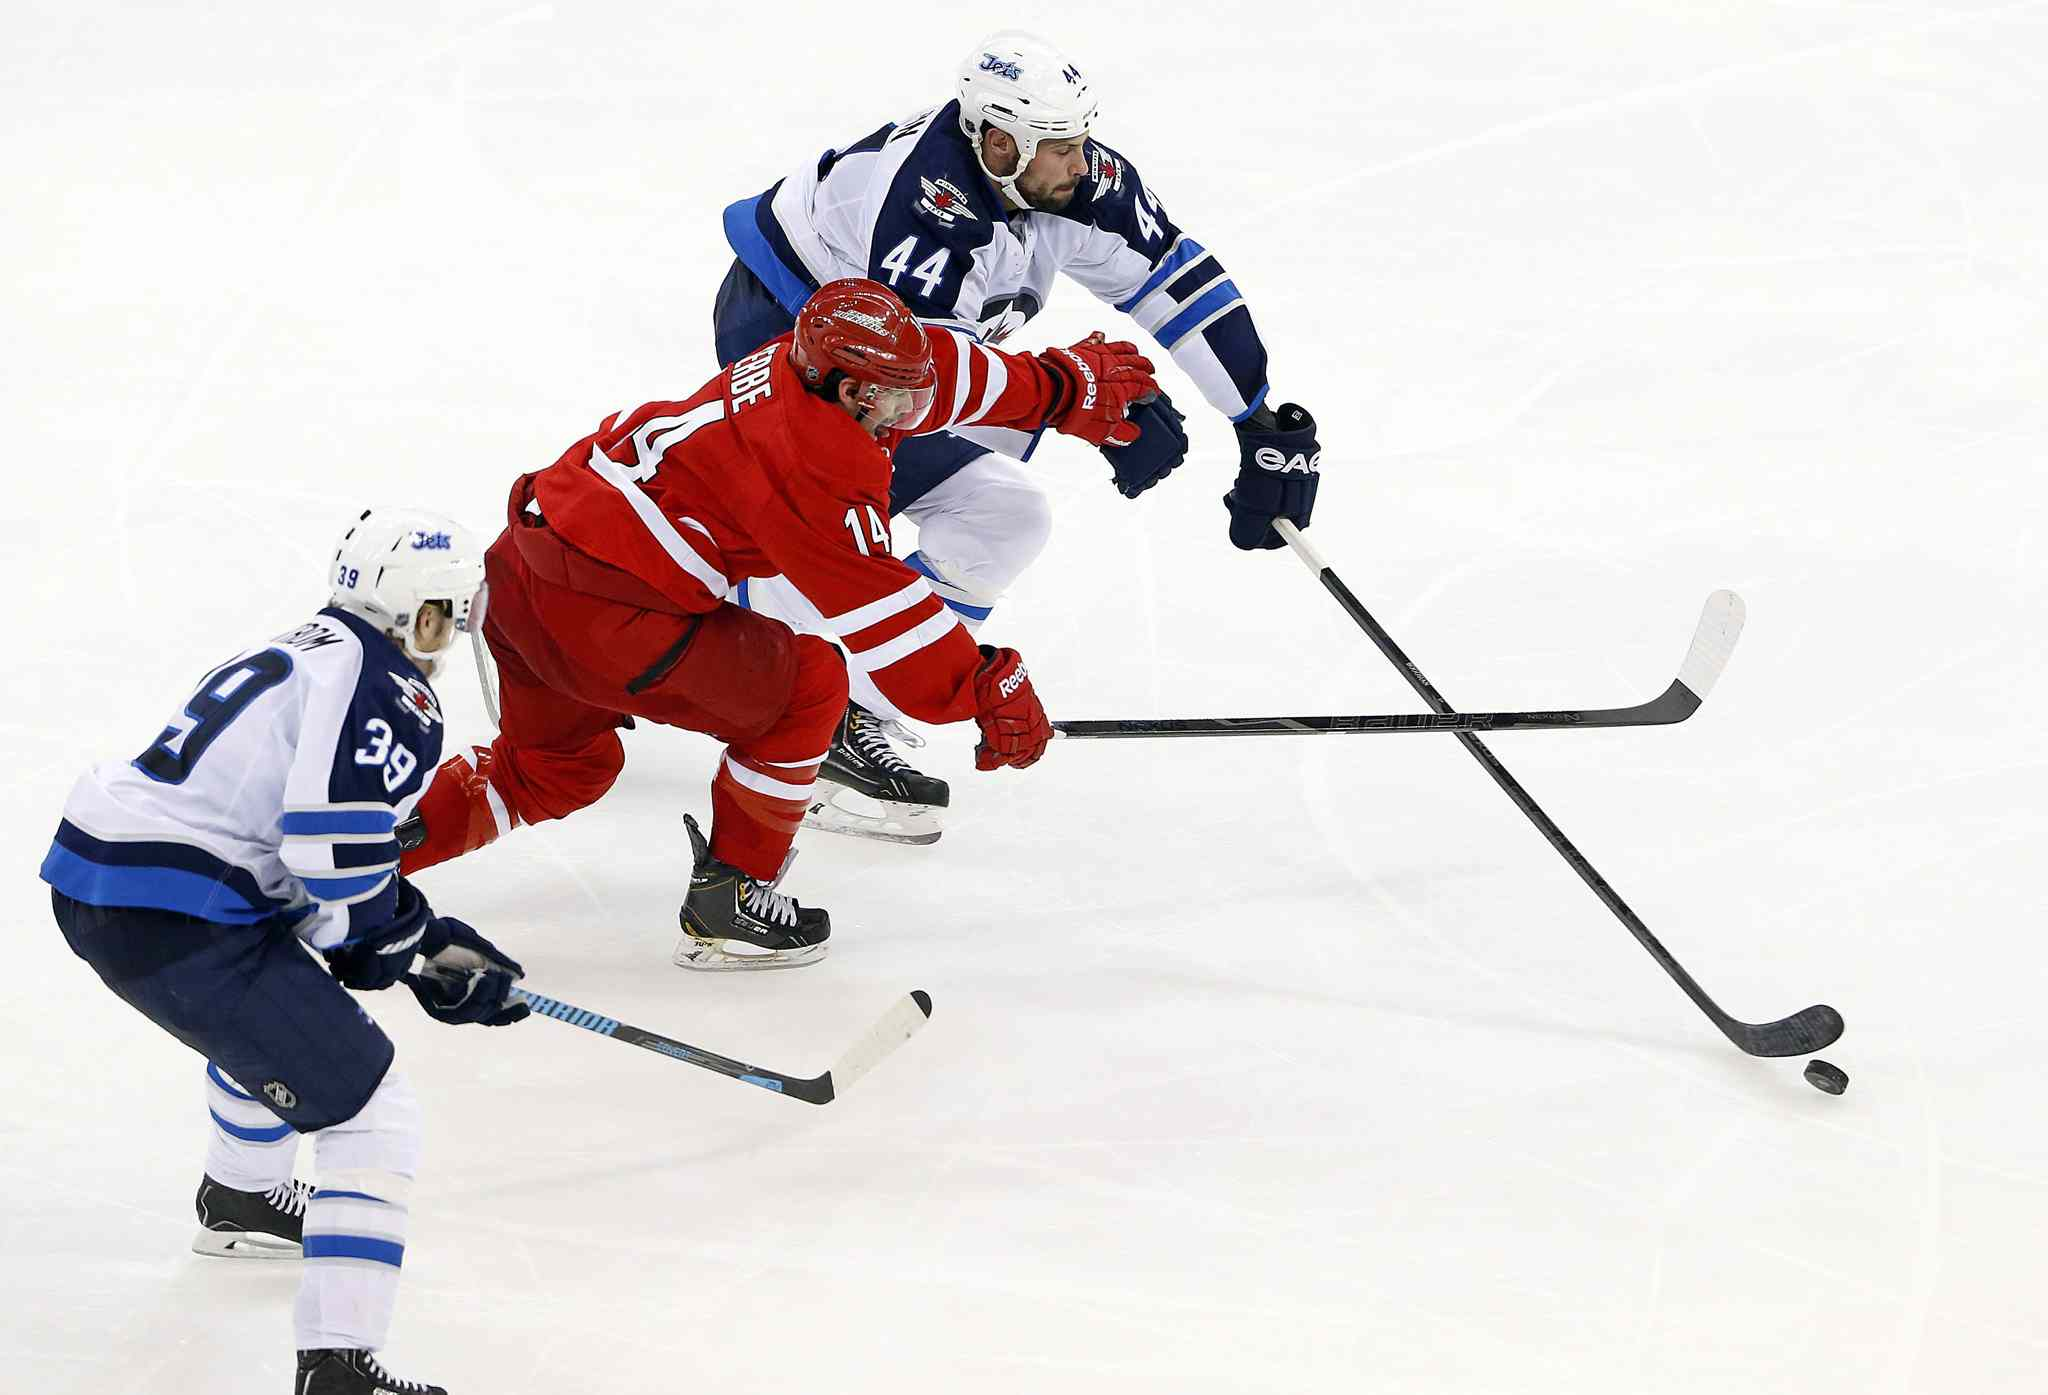 Carolina Hurricanes' Nathan Gerbe (14) tries to split the defense of Winnipeg Jets' Zach Bogosian (44) and Tobias Enstrom (39) of Sweden, during the third period of Tuesday's game.